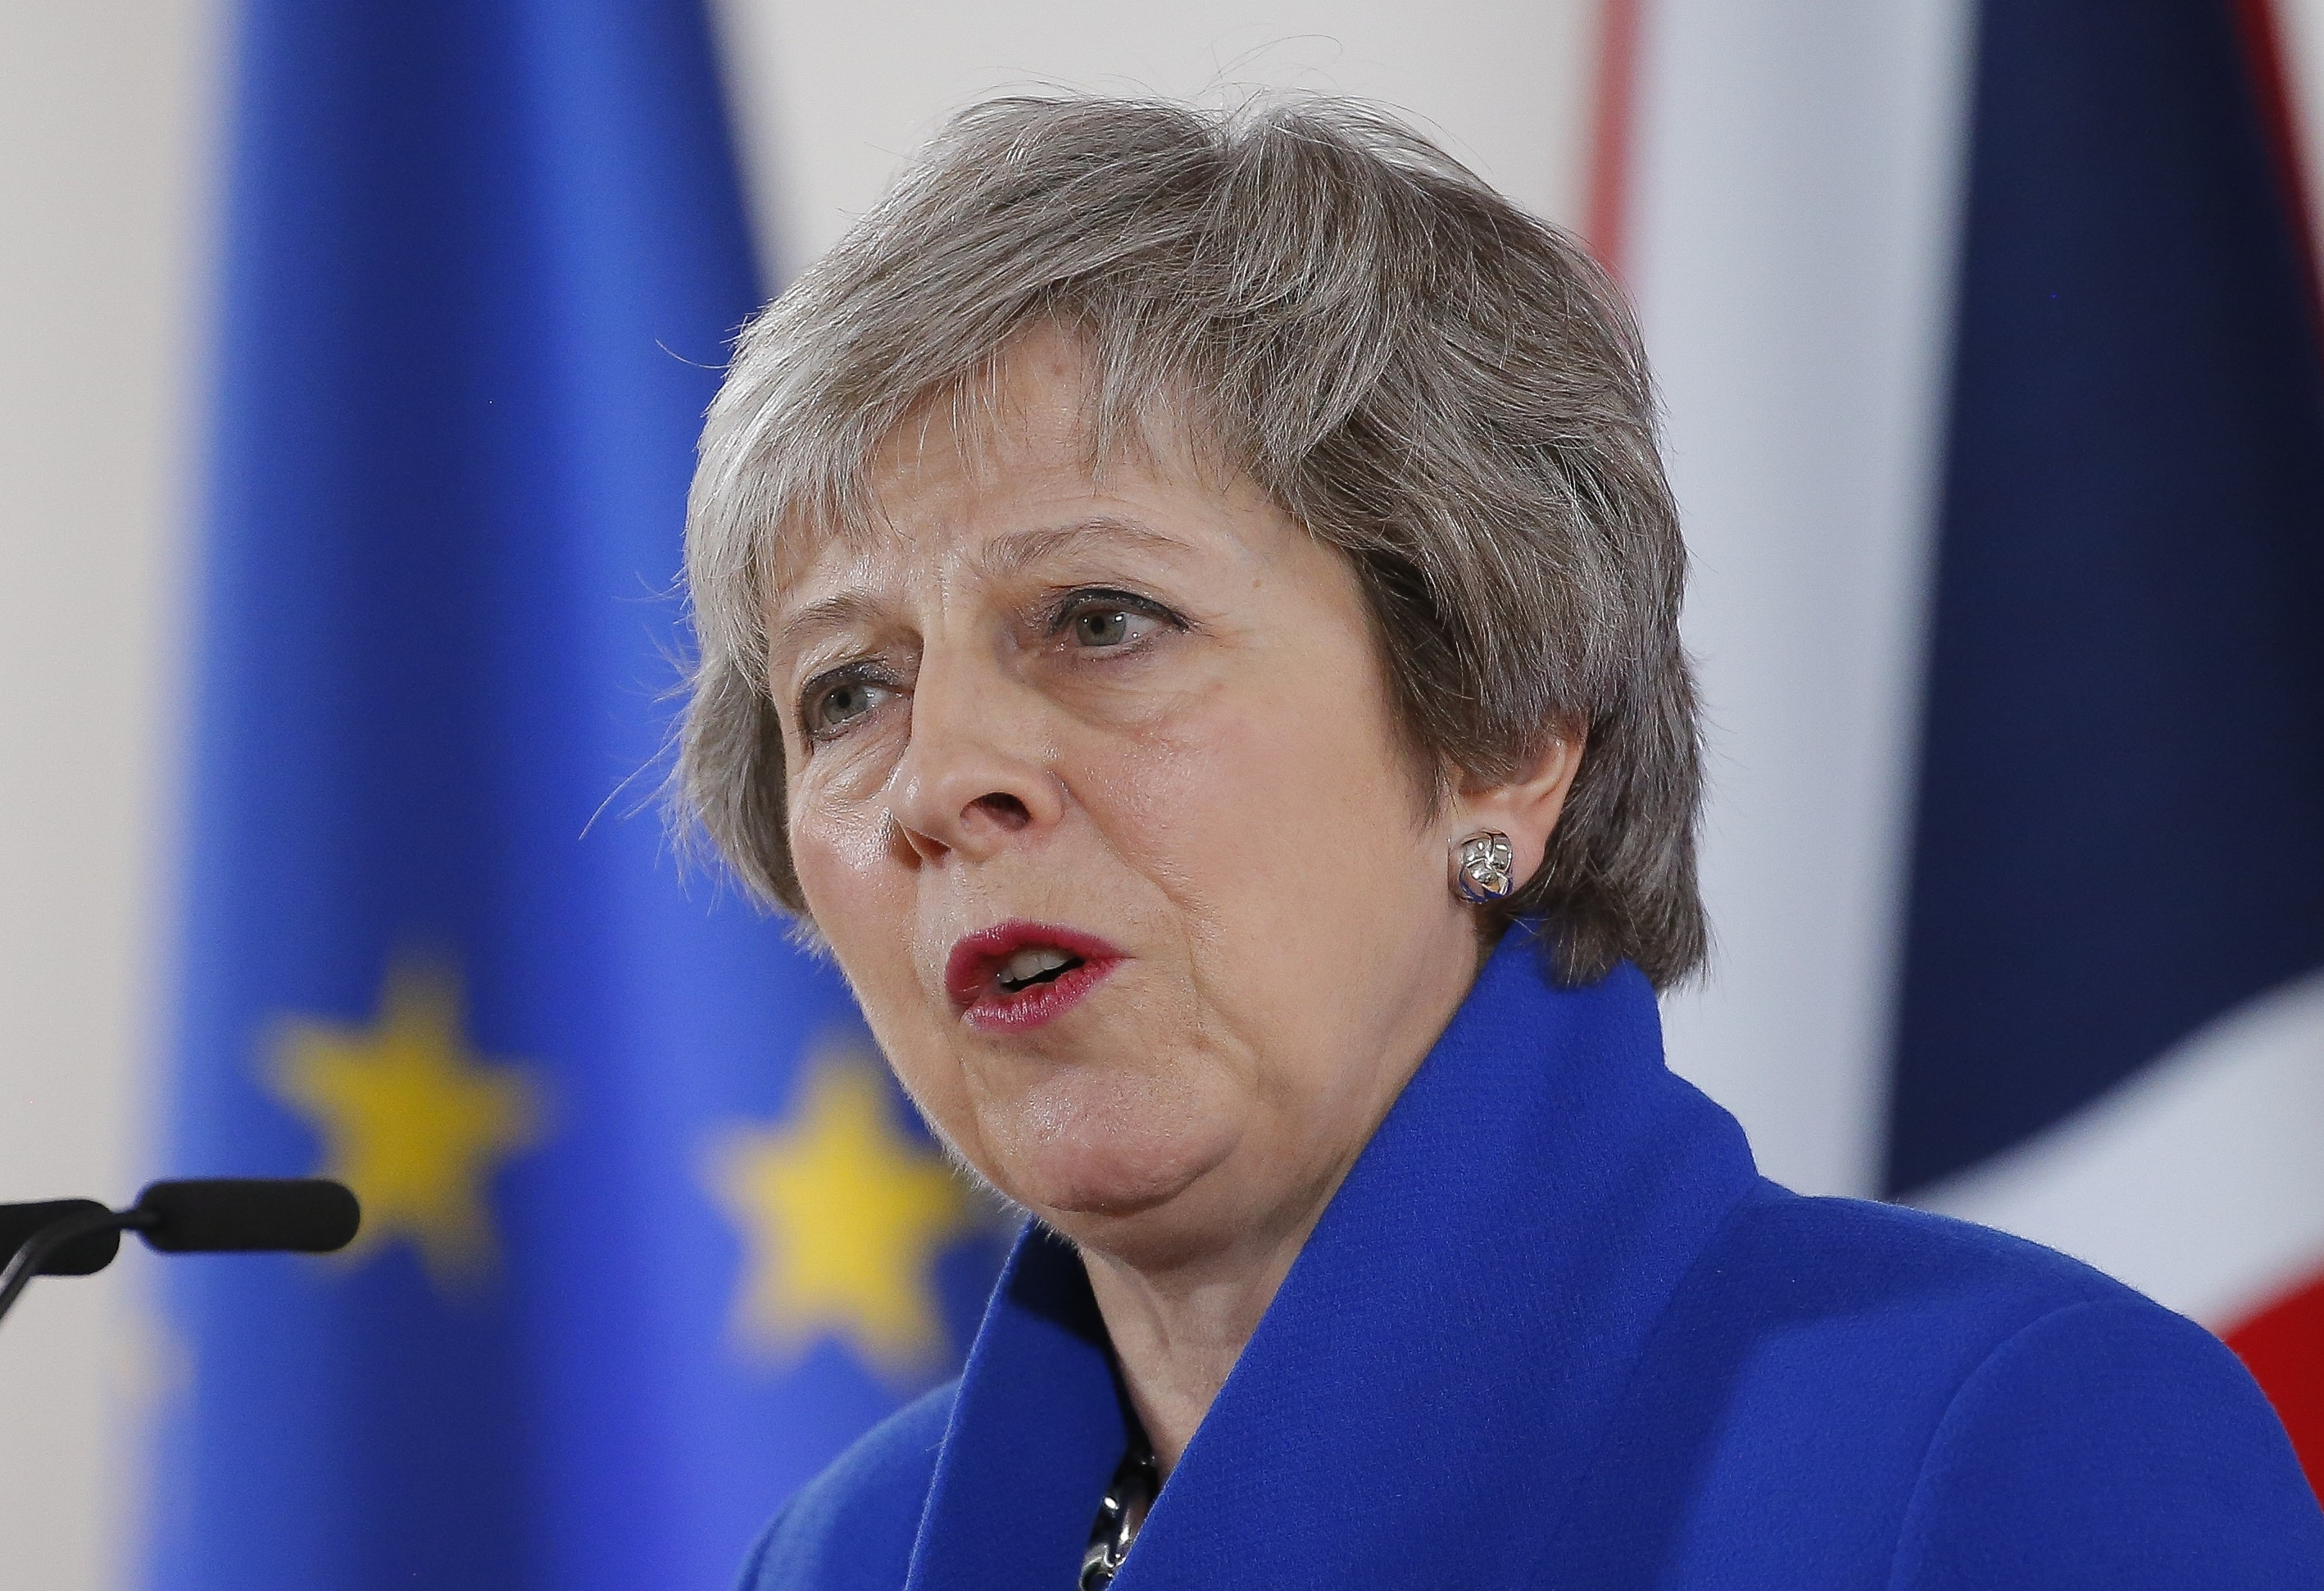 Theresa May's handling of Brexit is a classic case of bad leadership